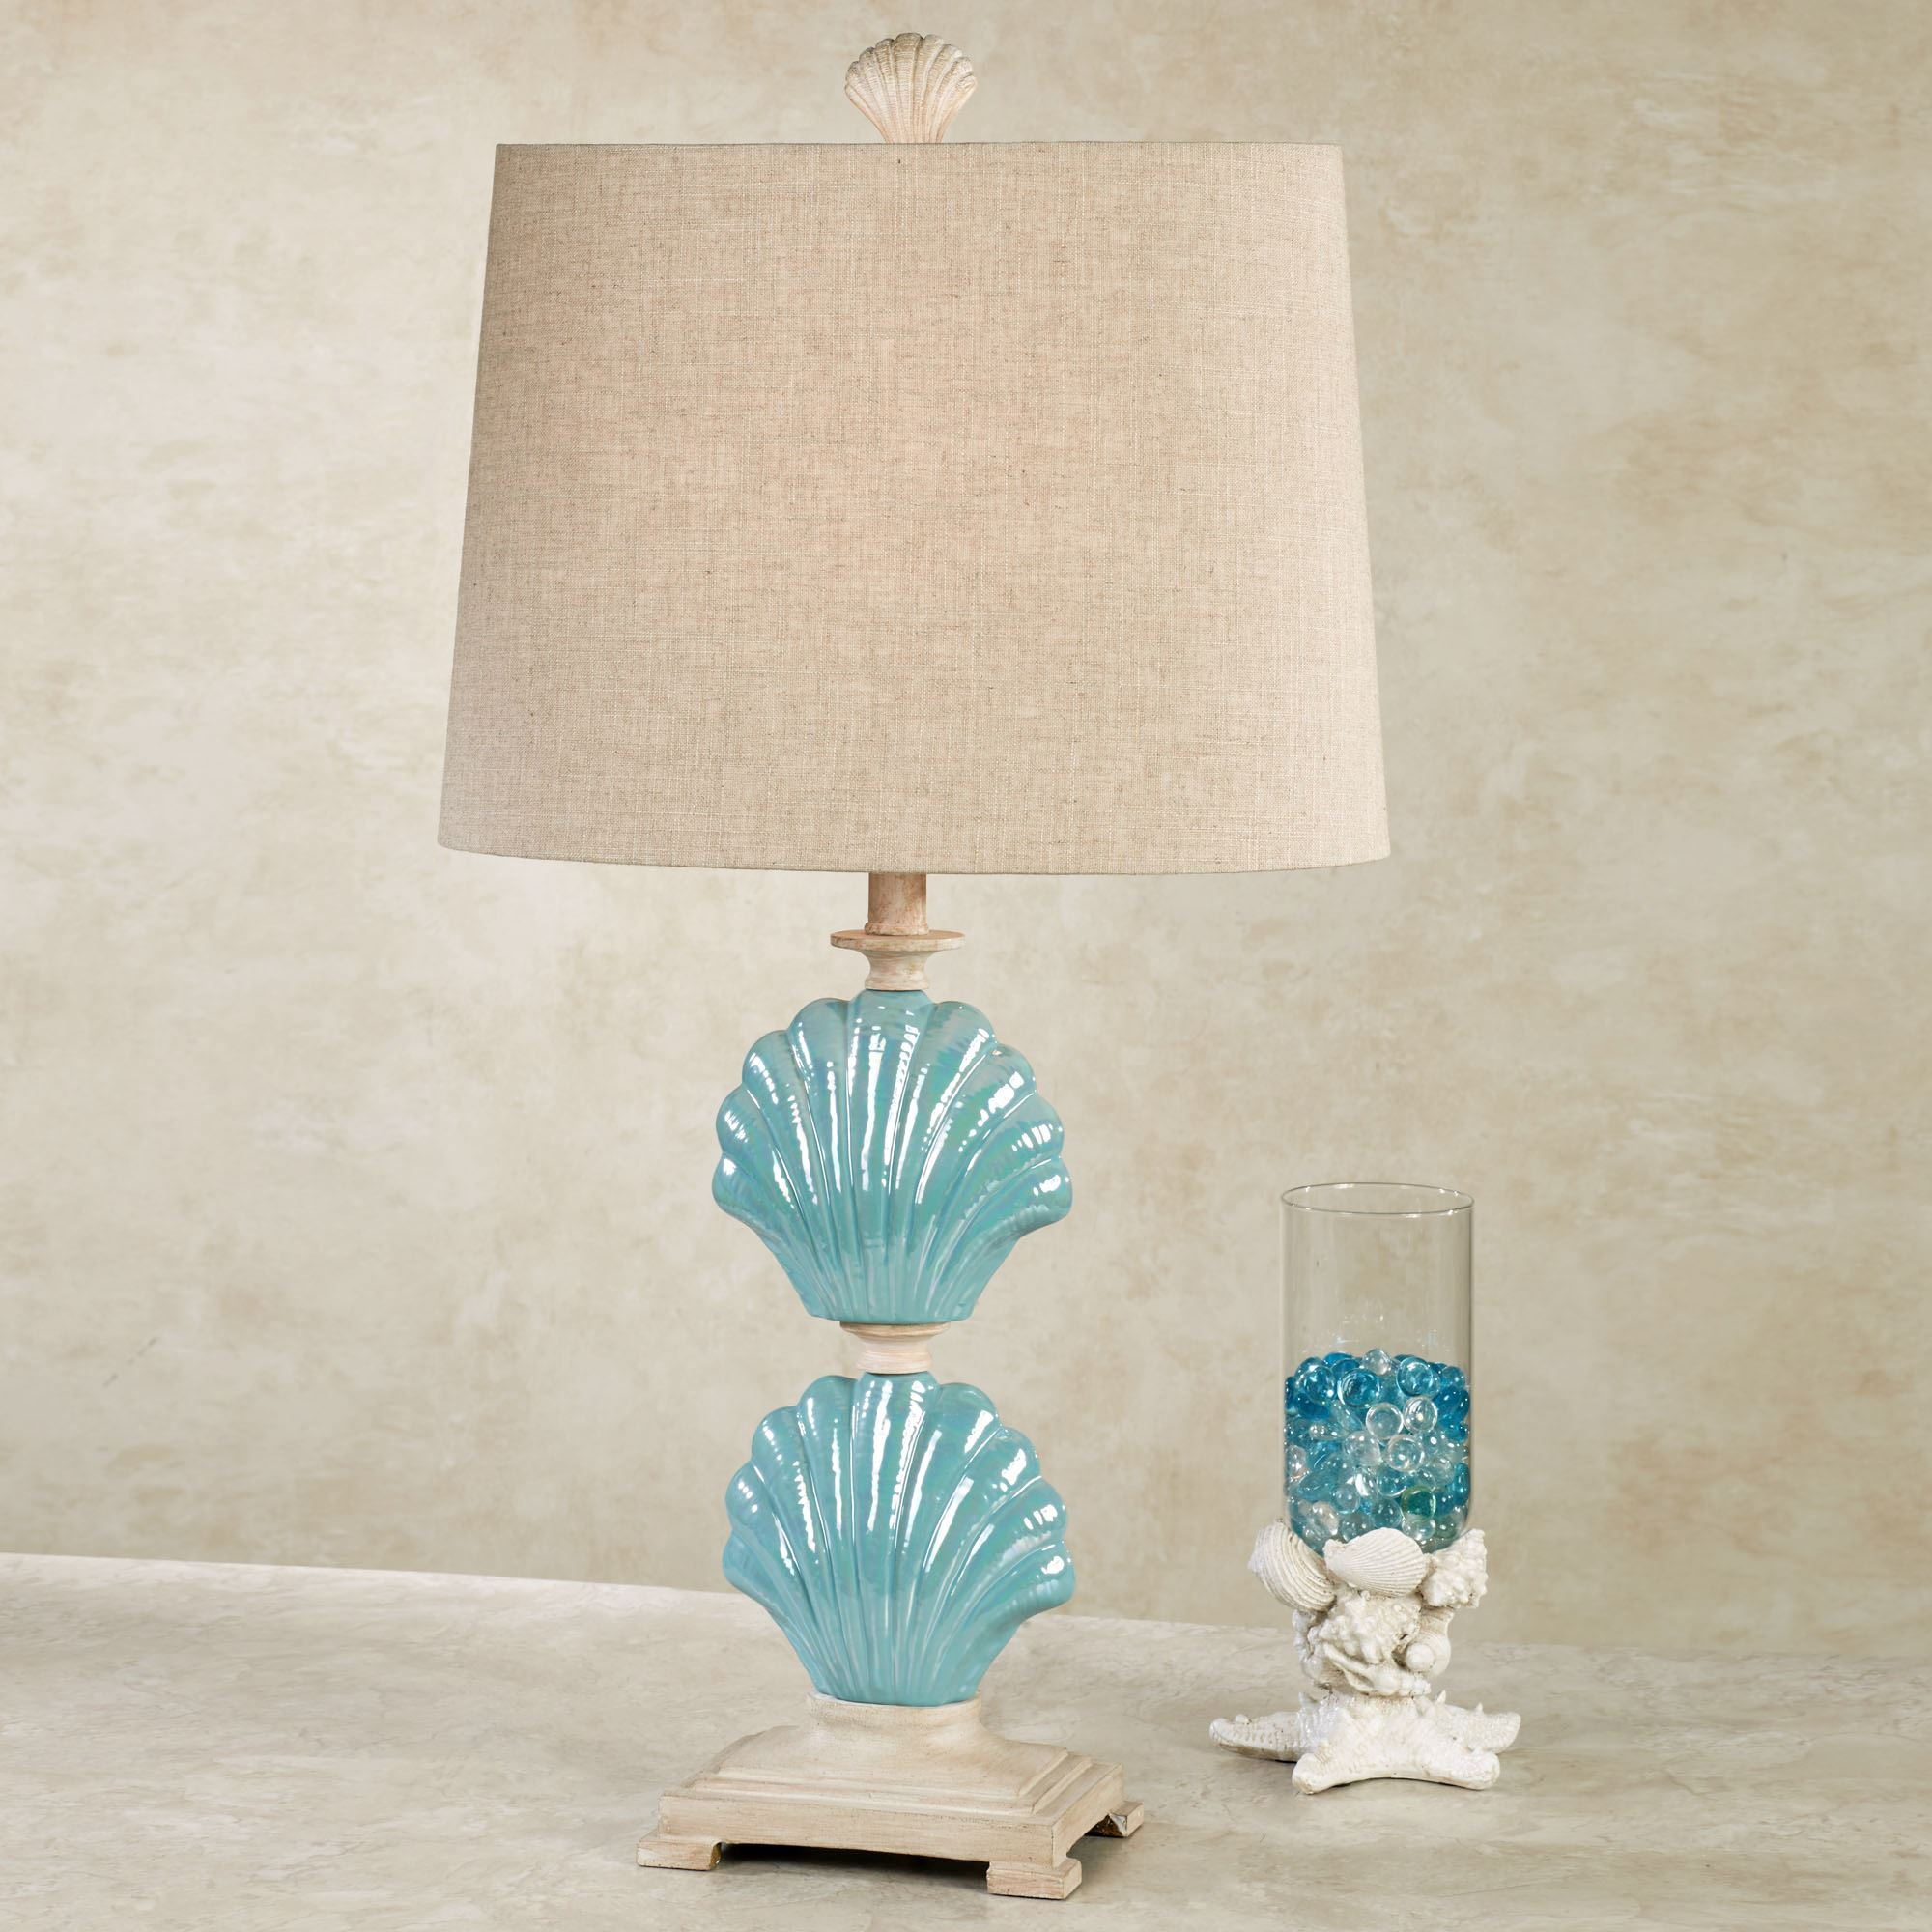 ideas lighting and fans ceiling turquoise table lamp photo